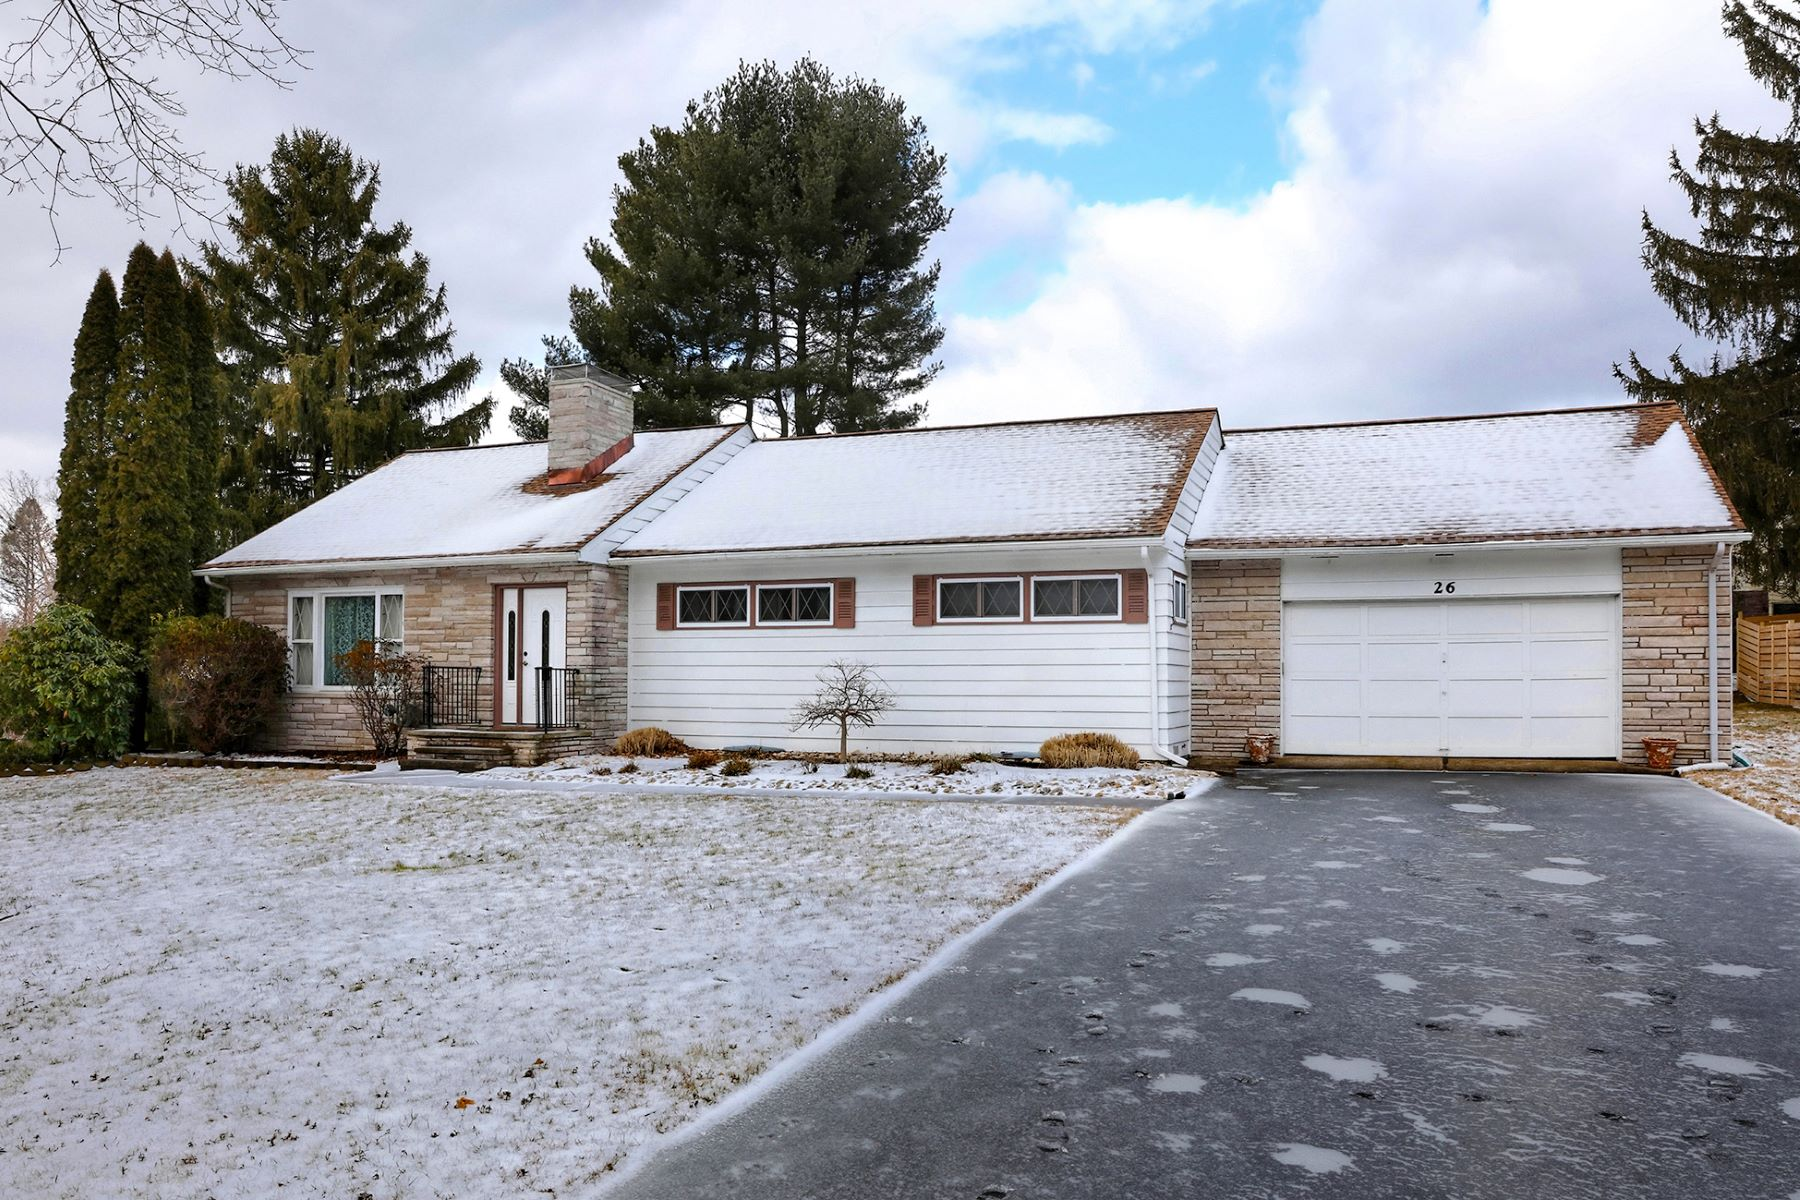 Single Family Home for Sale at Turnkey Ranch In A Commuter-Friendly Location 26 Delaware Avenue, Ewing, New Jersey 08628 United StatesMunicipality: Ewing Township